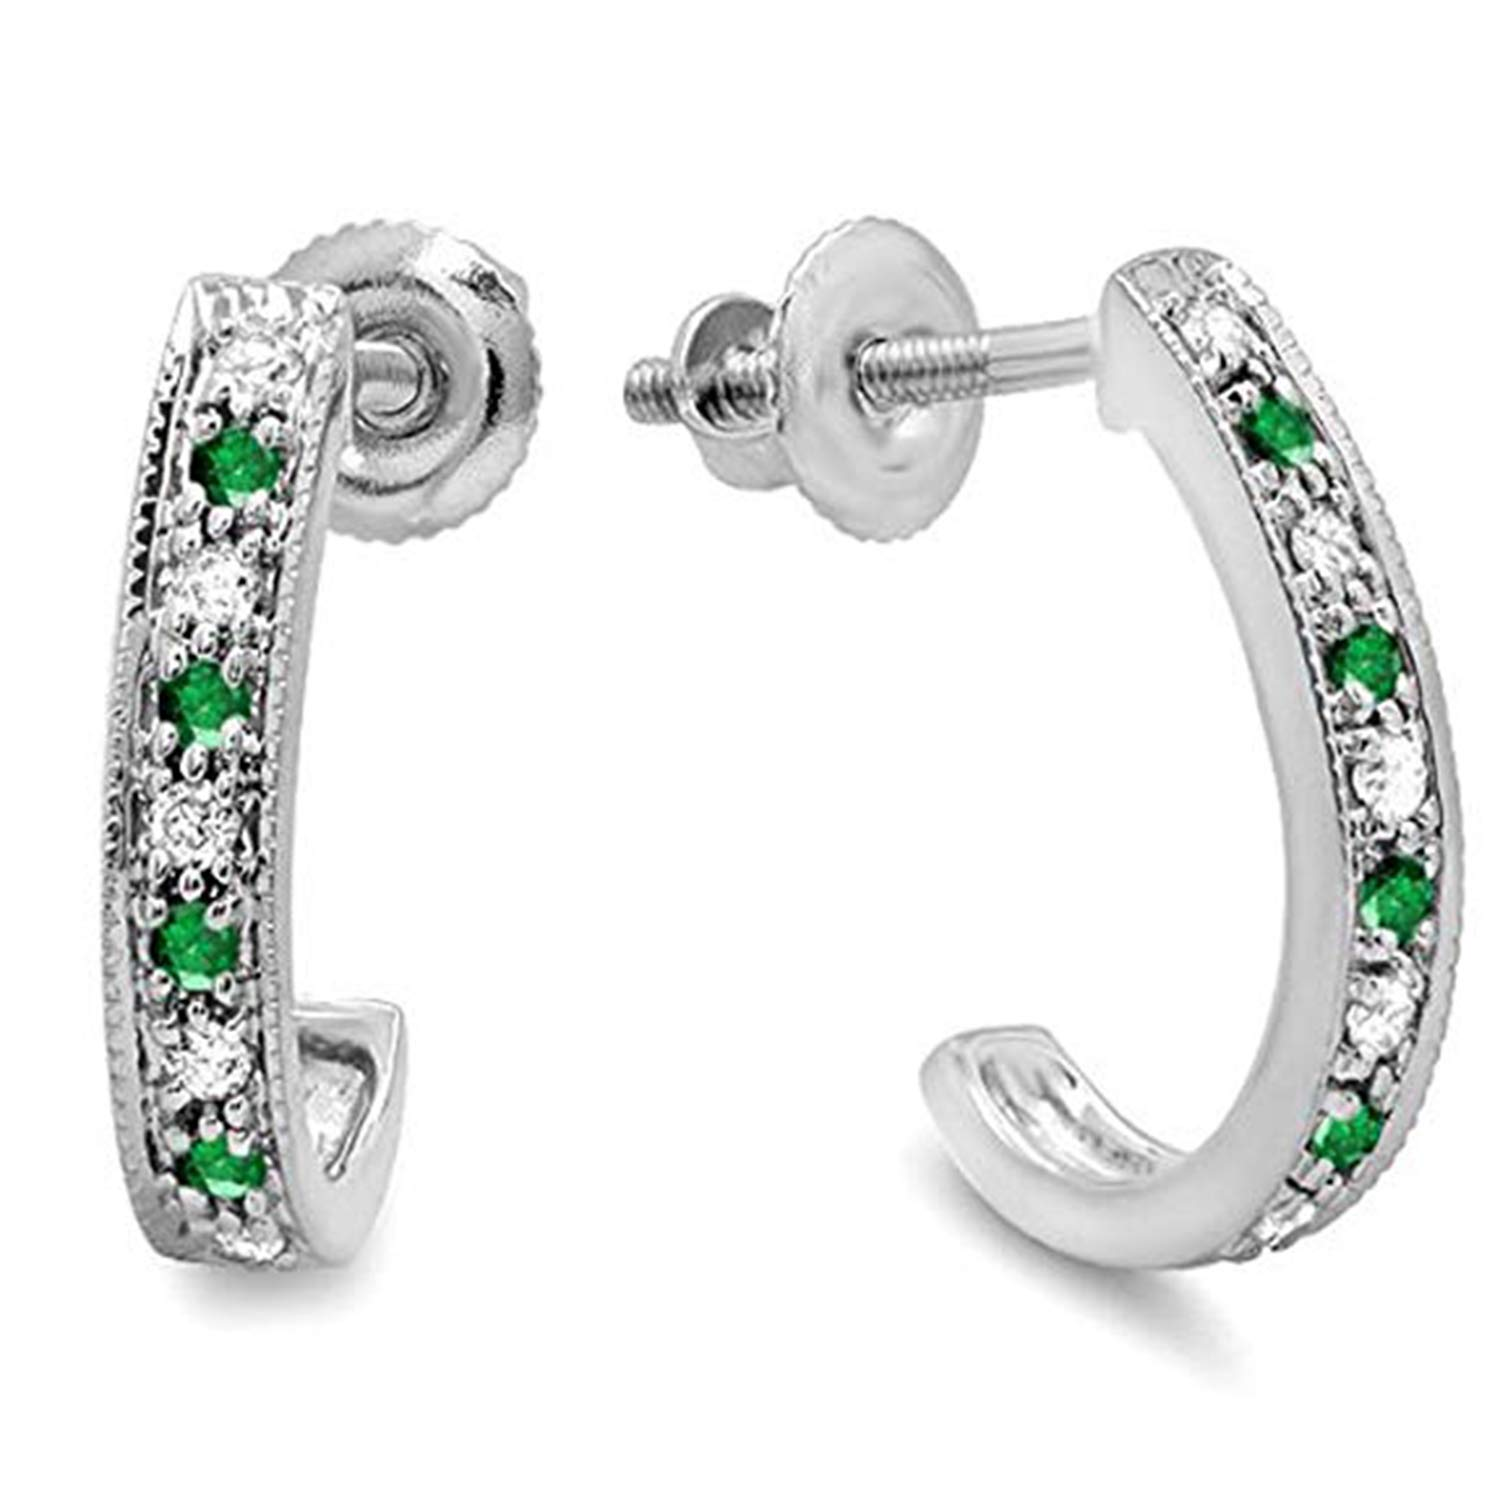 SjSilver Jewels 14K Gold Plated Simulated Diamond Studded Designer Hoop Earrings